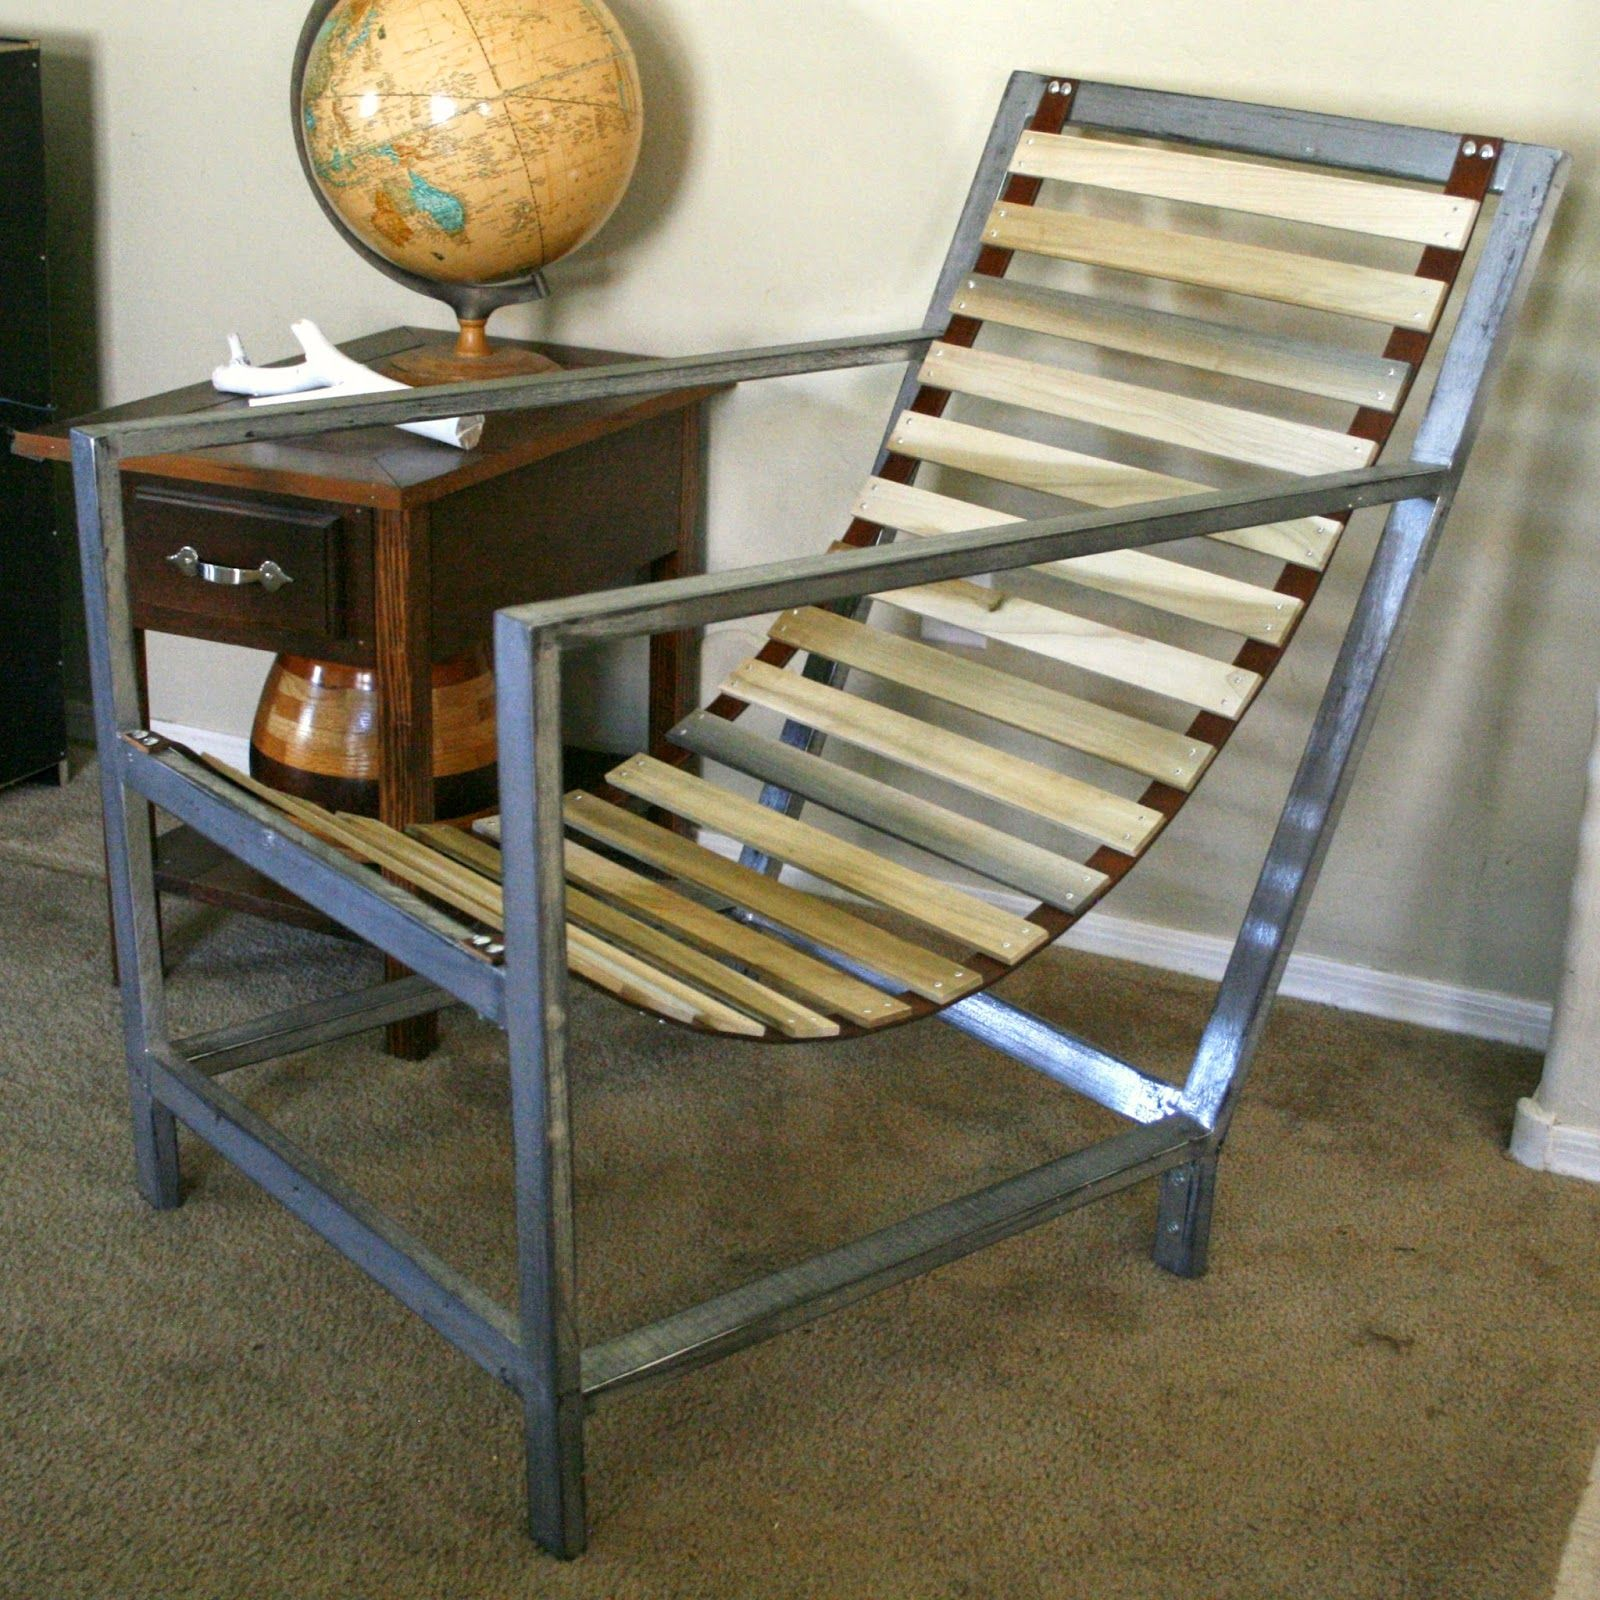 diy leather belt chair wooden swing plans pneumatic addict furniture how to rivet wood and or